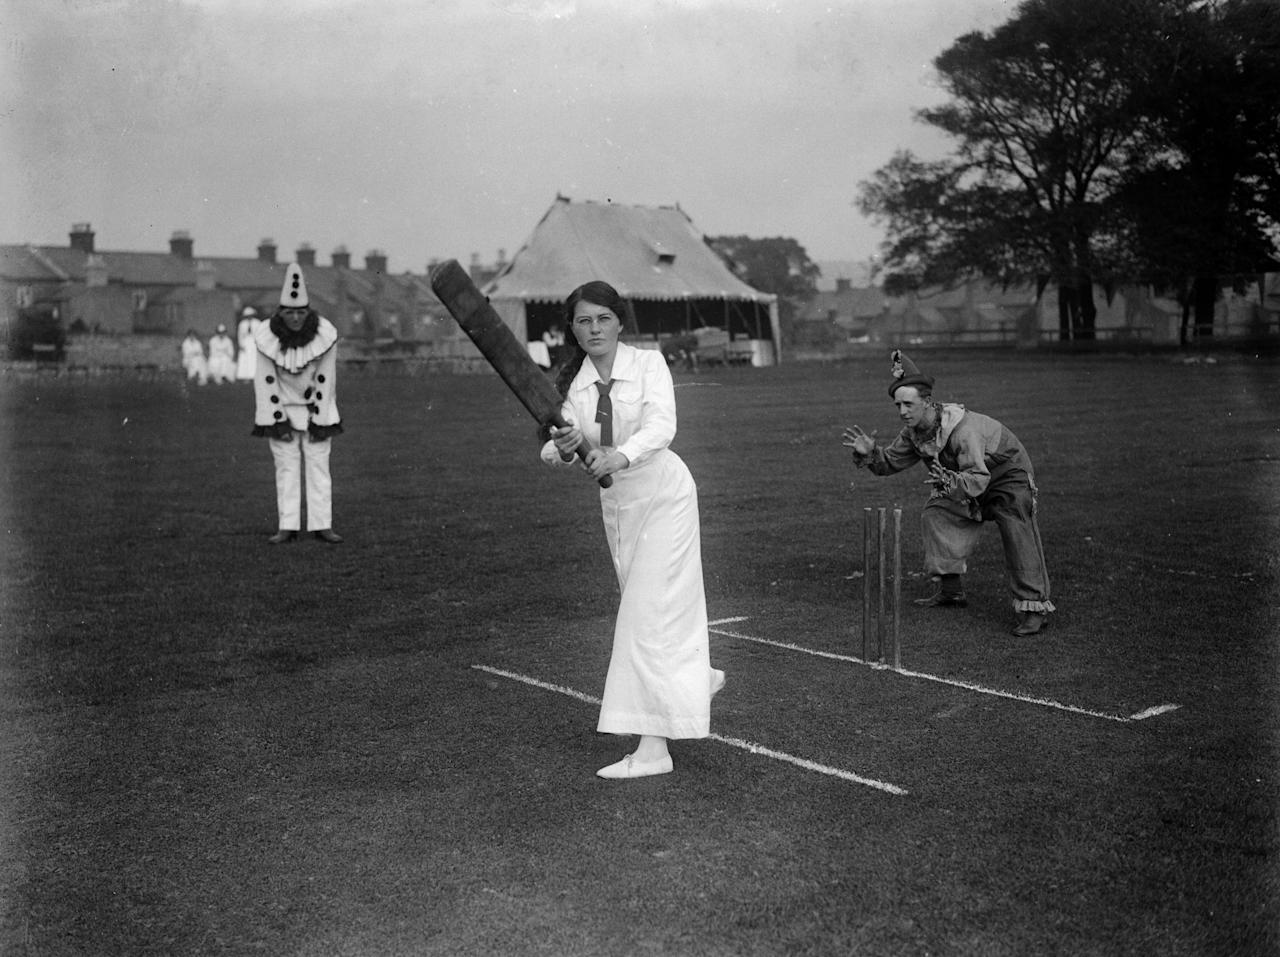 [ICCWWC2013] circa 1918:  A Ladies cricket match against Soldiers at Ramsgate in Kent.  (Photo by Central Press/Getty Images)